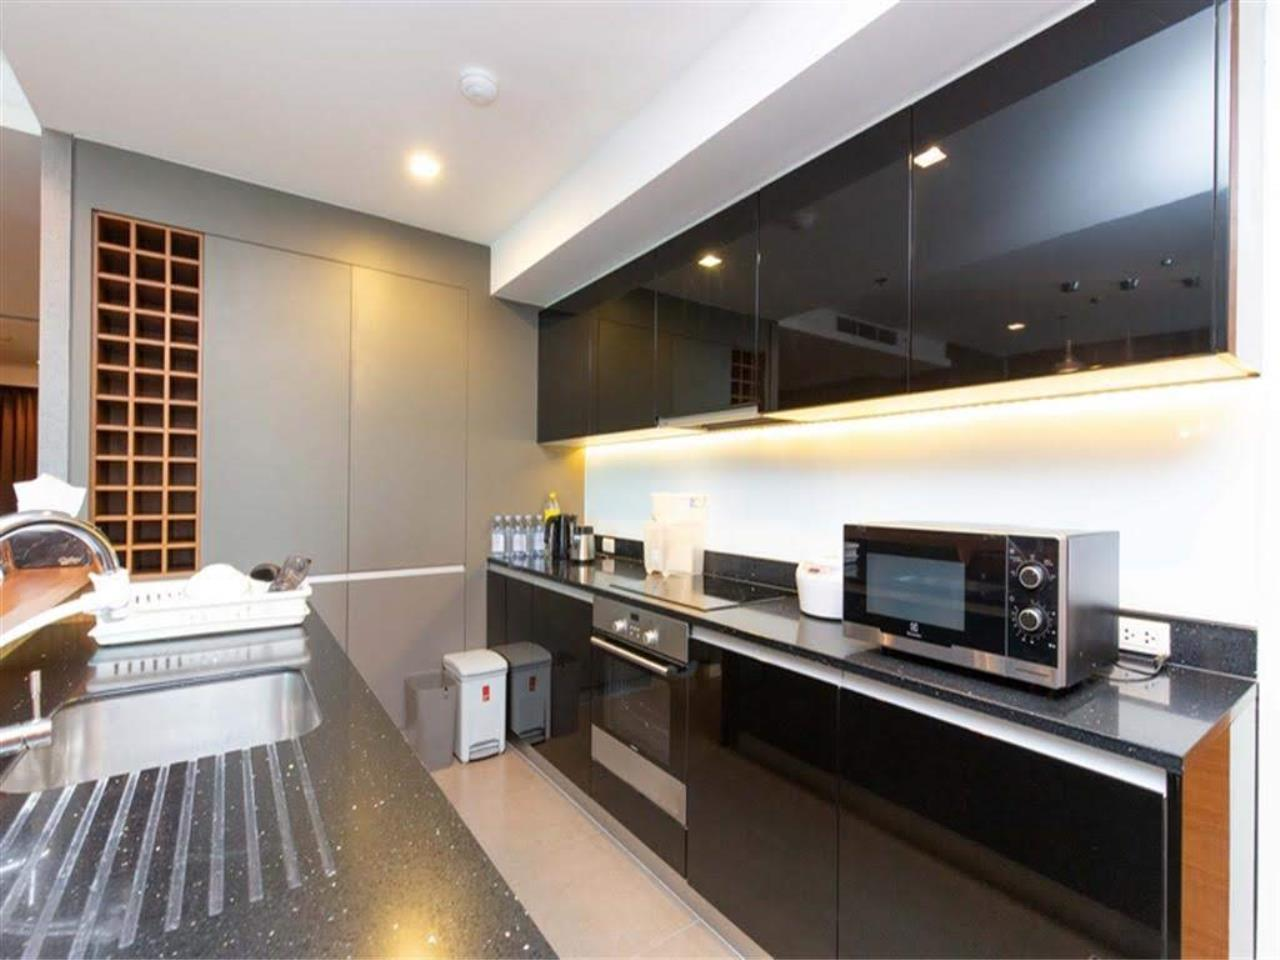 Bestbkkcondos Agency's The River - 233,8 sqm - For Sale : 52 000 000 THB - 3 Bedrooms 8